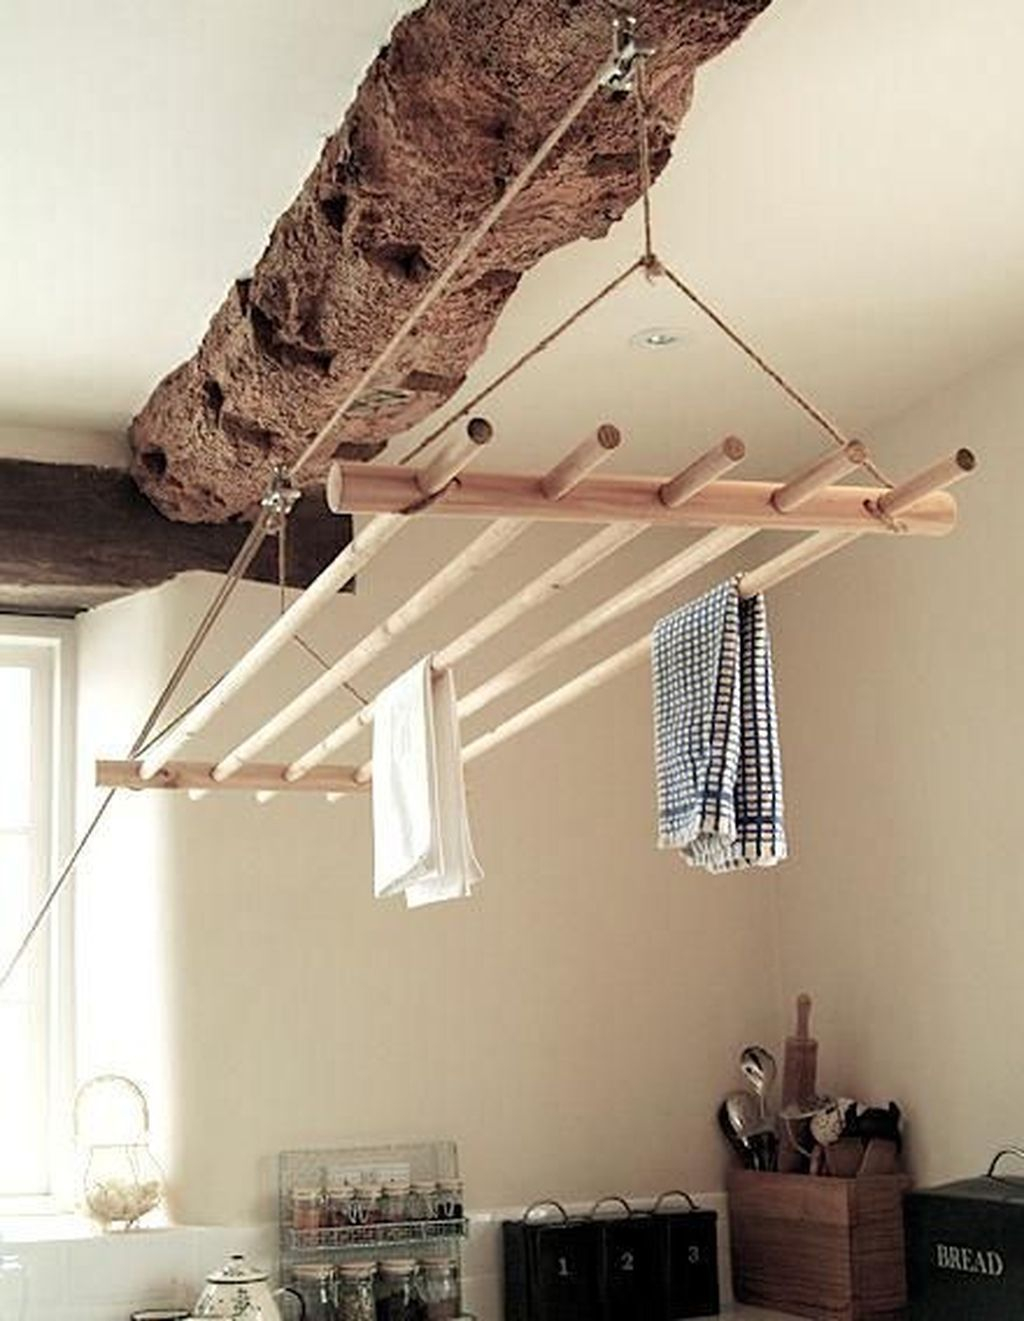 Simple drying rack DIY Saving Money Ideas Of Clothesline To Hang Dry Your Clothes